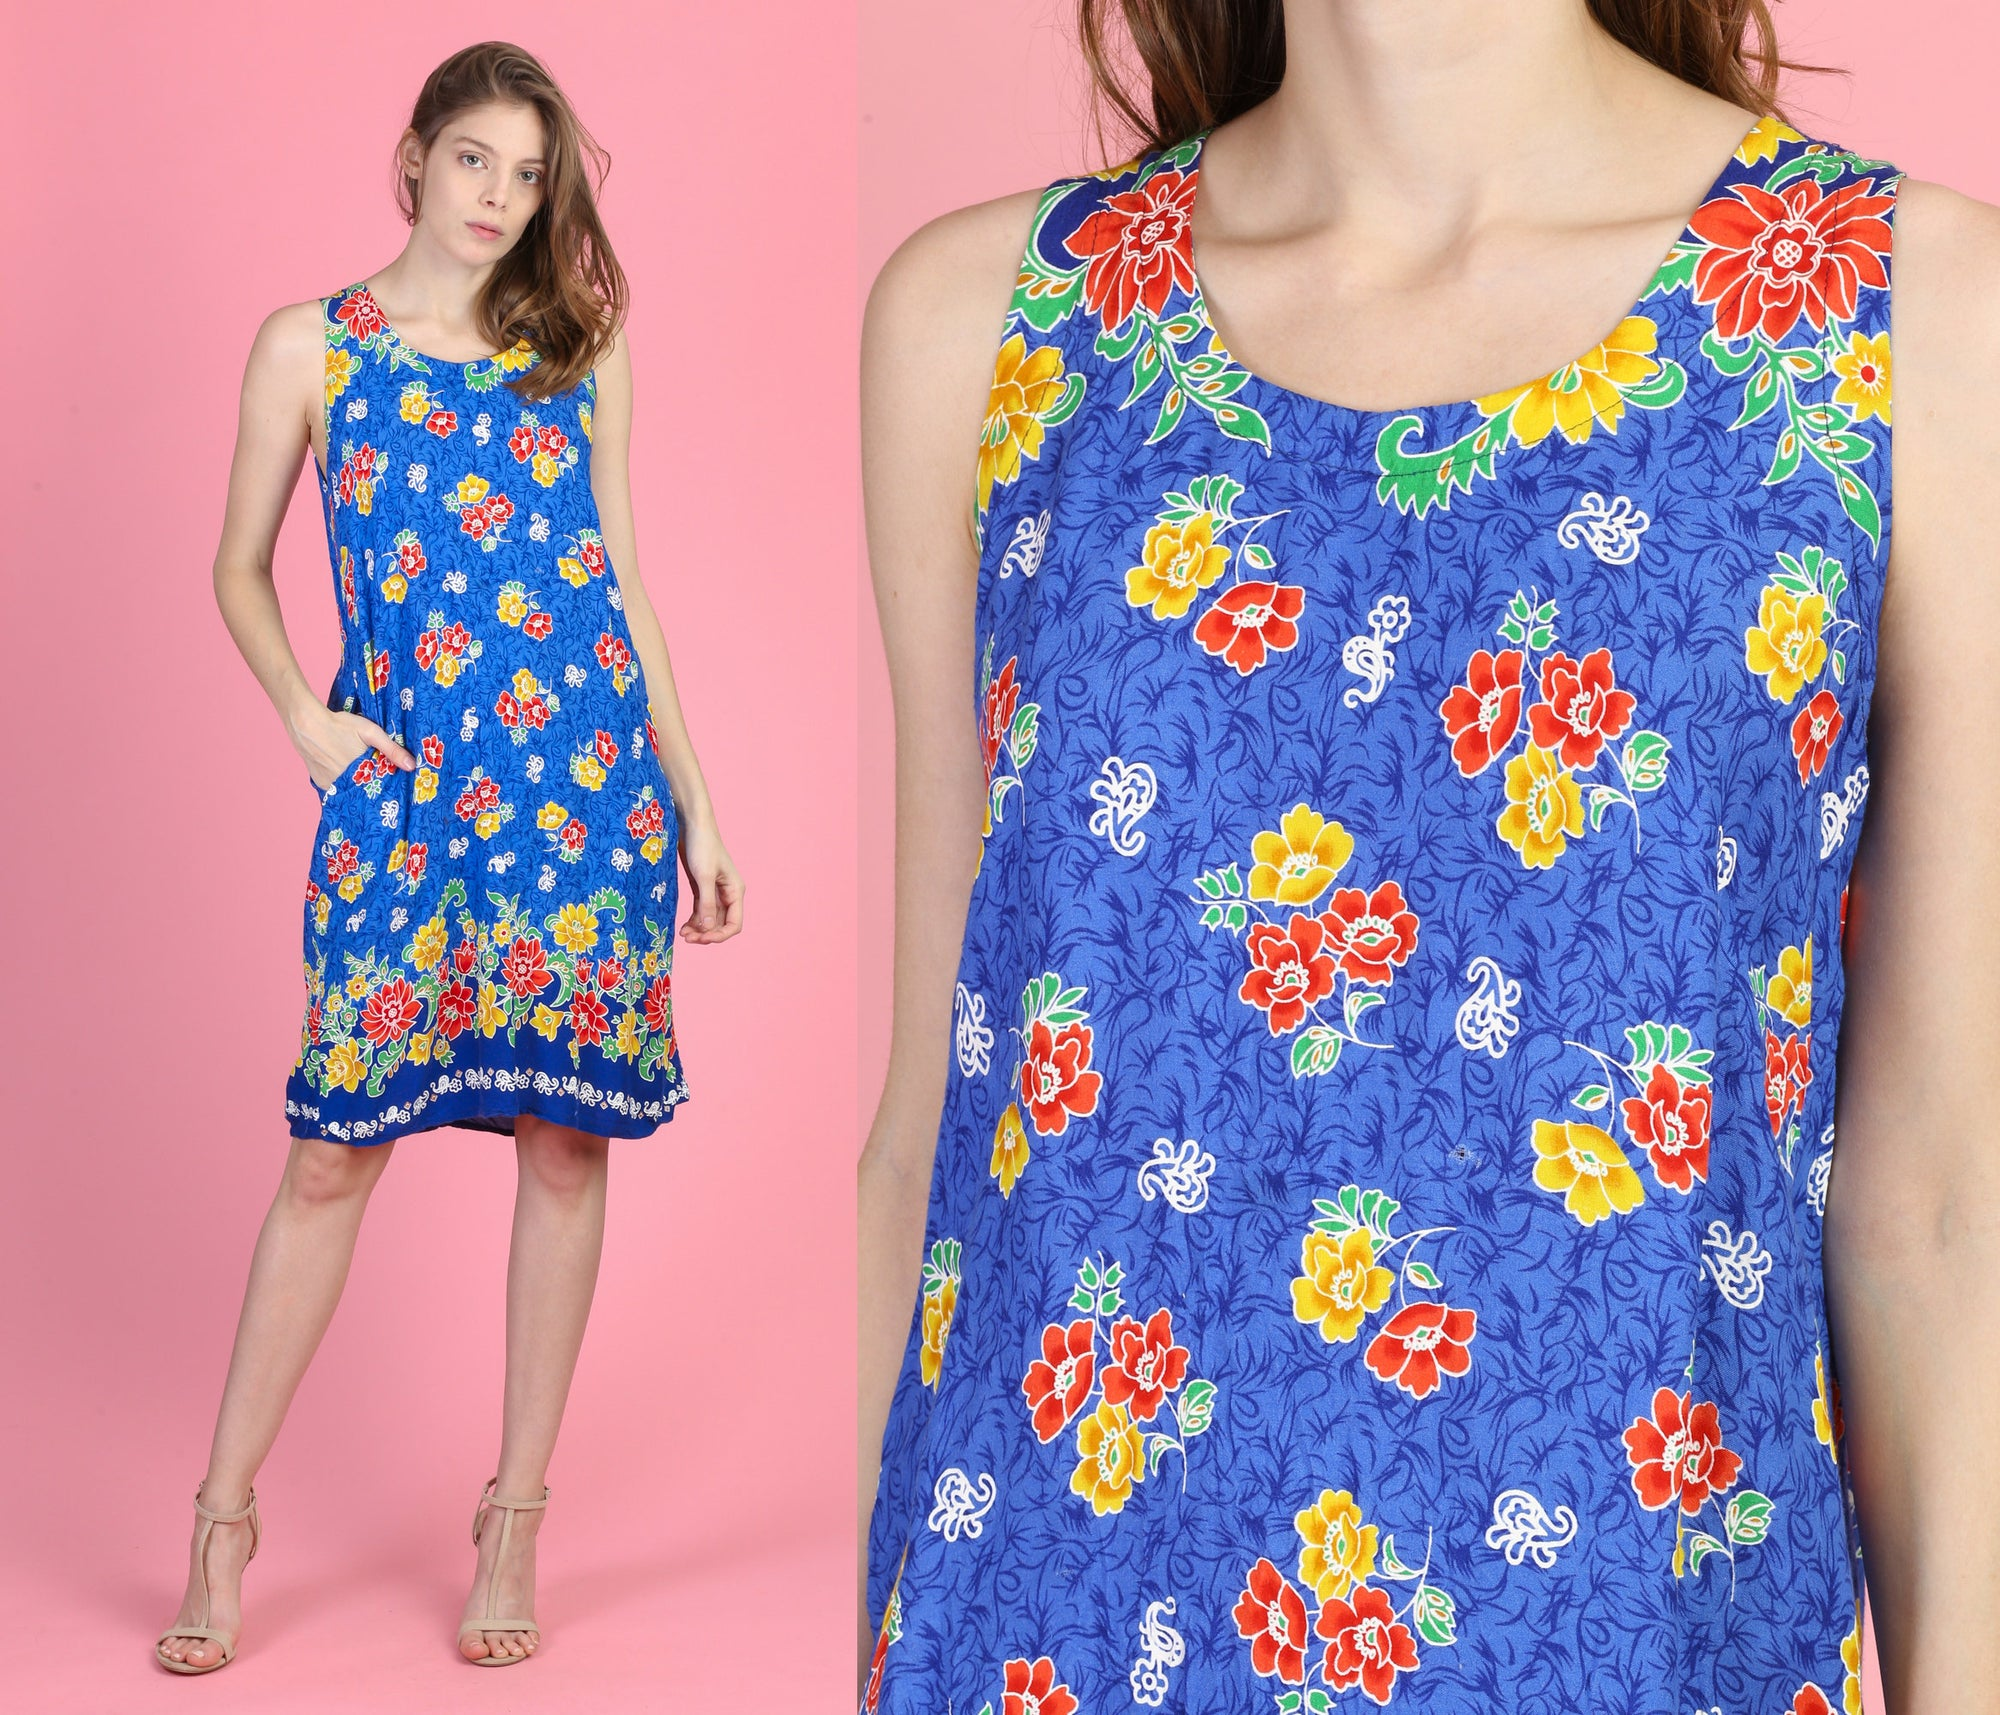 90s Floral Mini Sundress - Medium